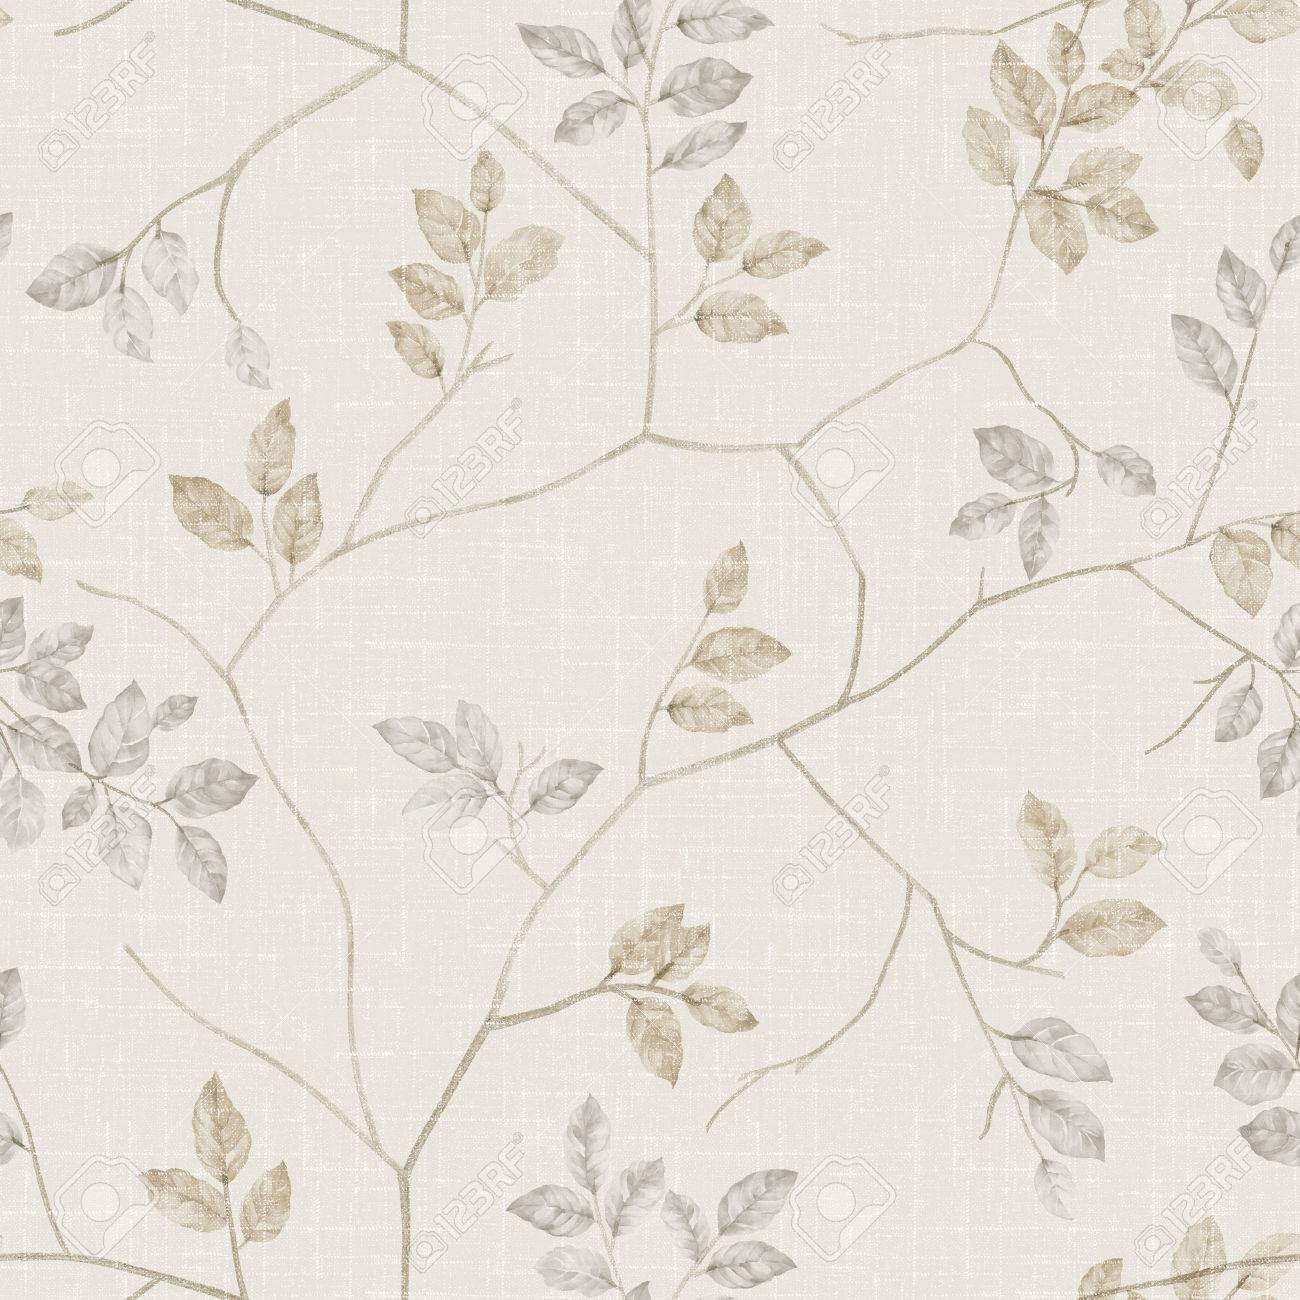 Classical style pattern seamless background - For easy making seamless pattern use it for filling any contours Stock Photo - 23095743